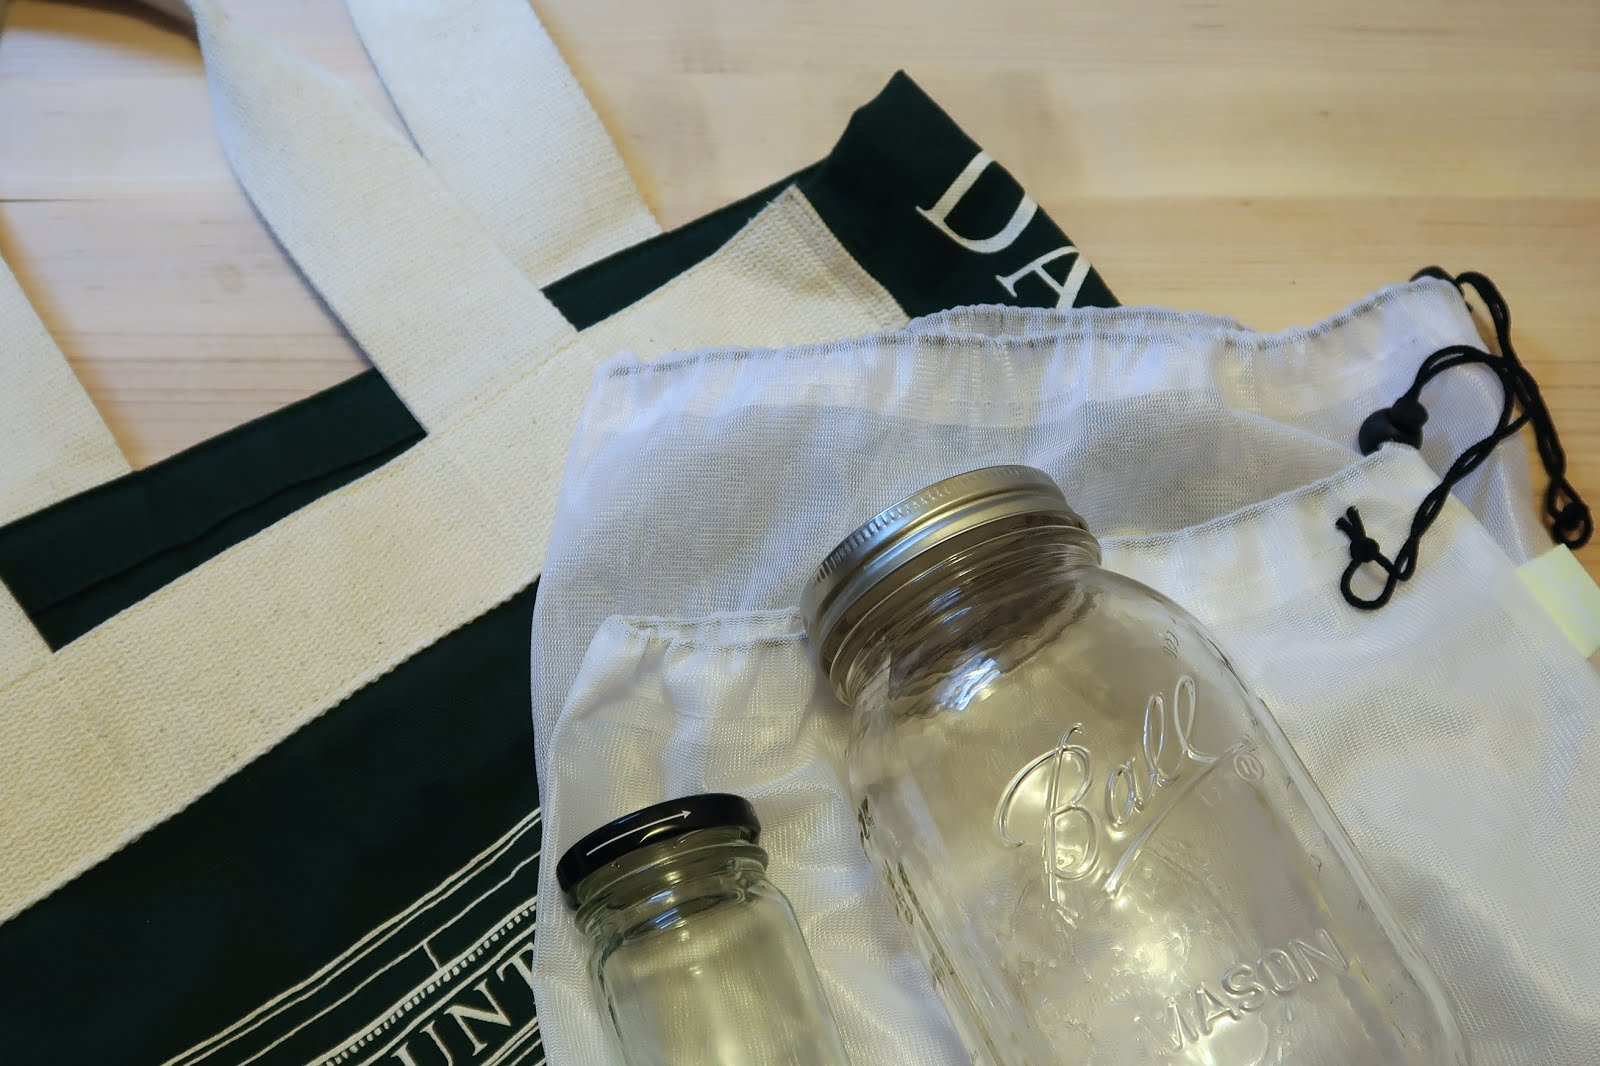 zero waste plastic free july reusable eco friendly mason jar tote bag produce glass